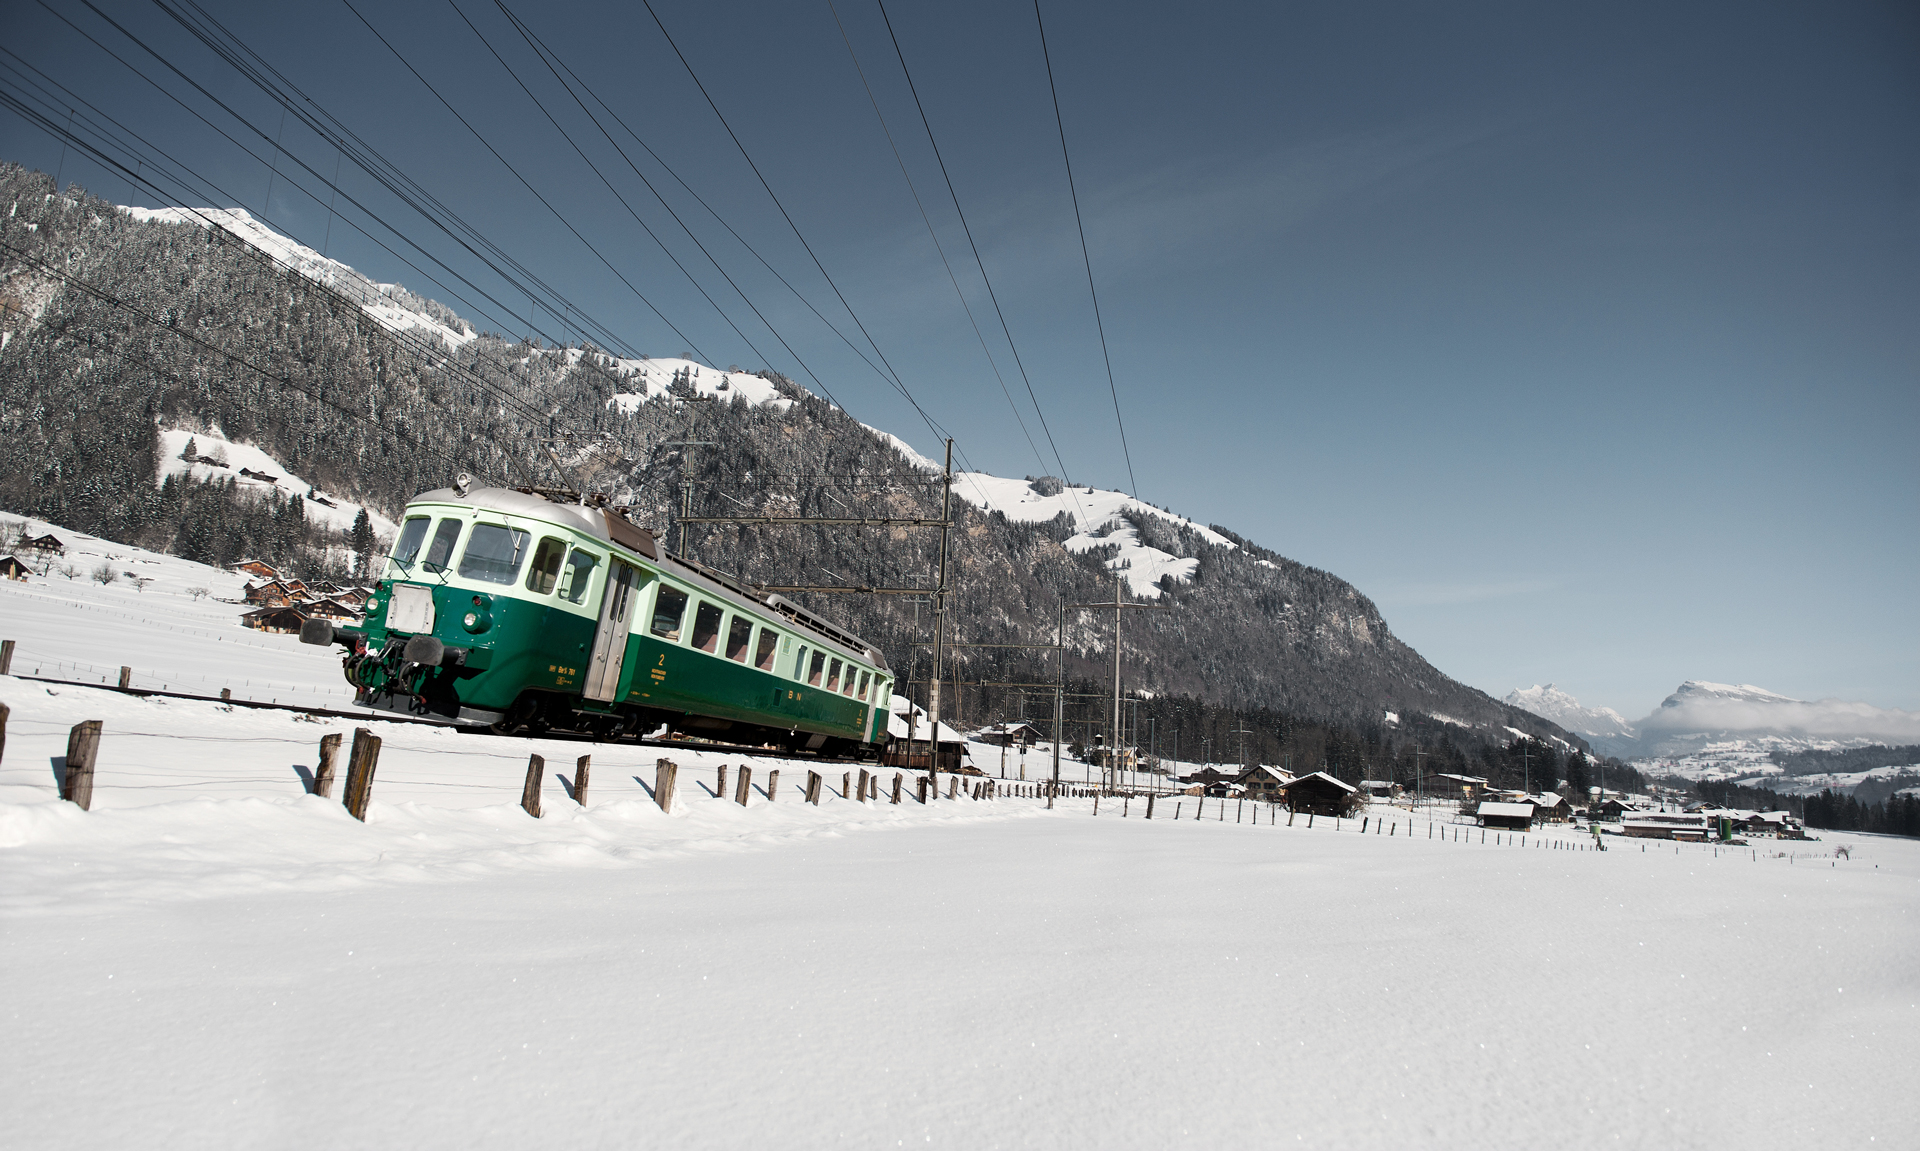 Wellensittich bei Frutigen im Winter